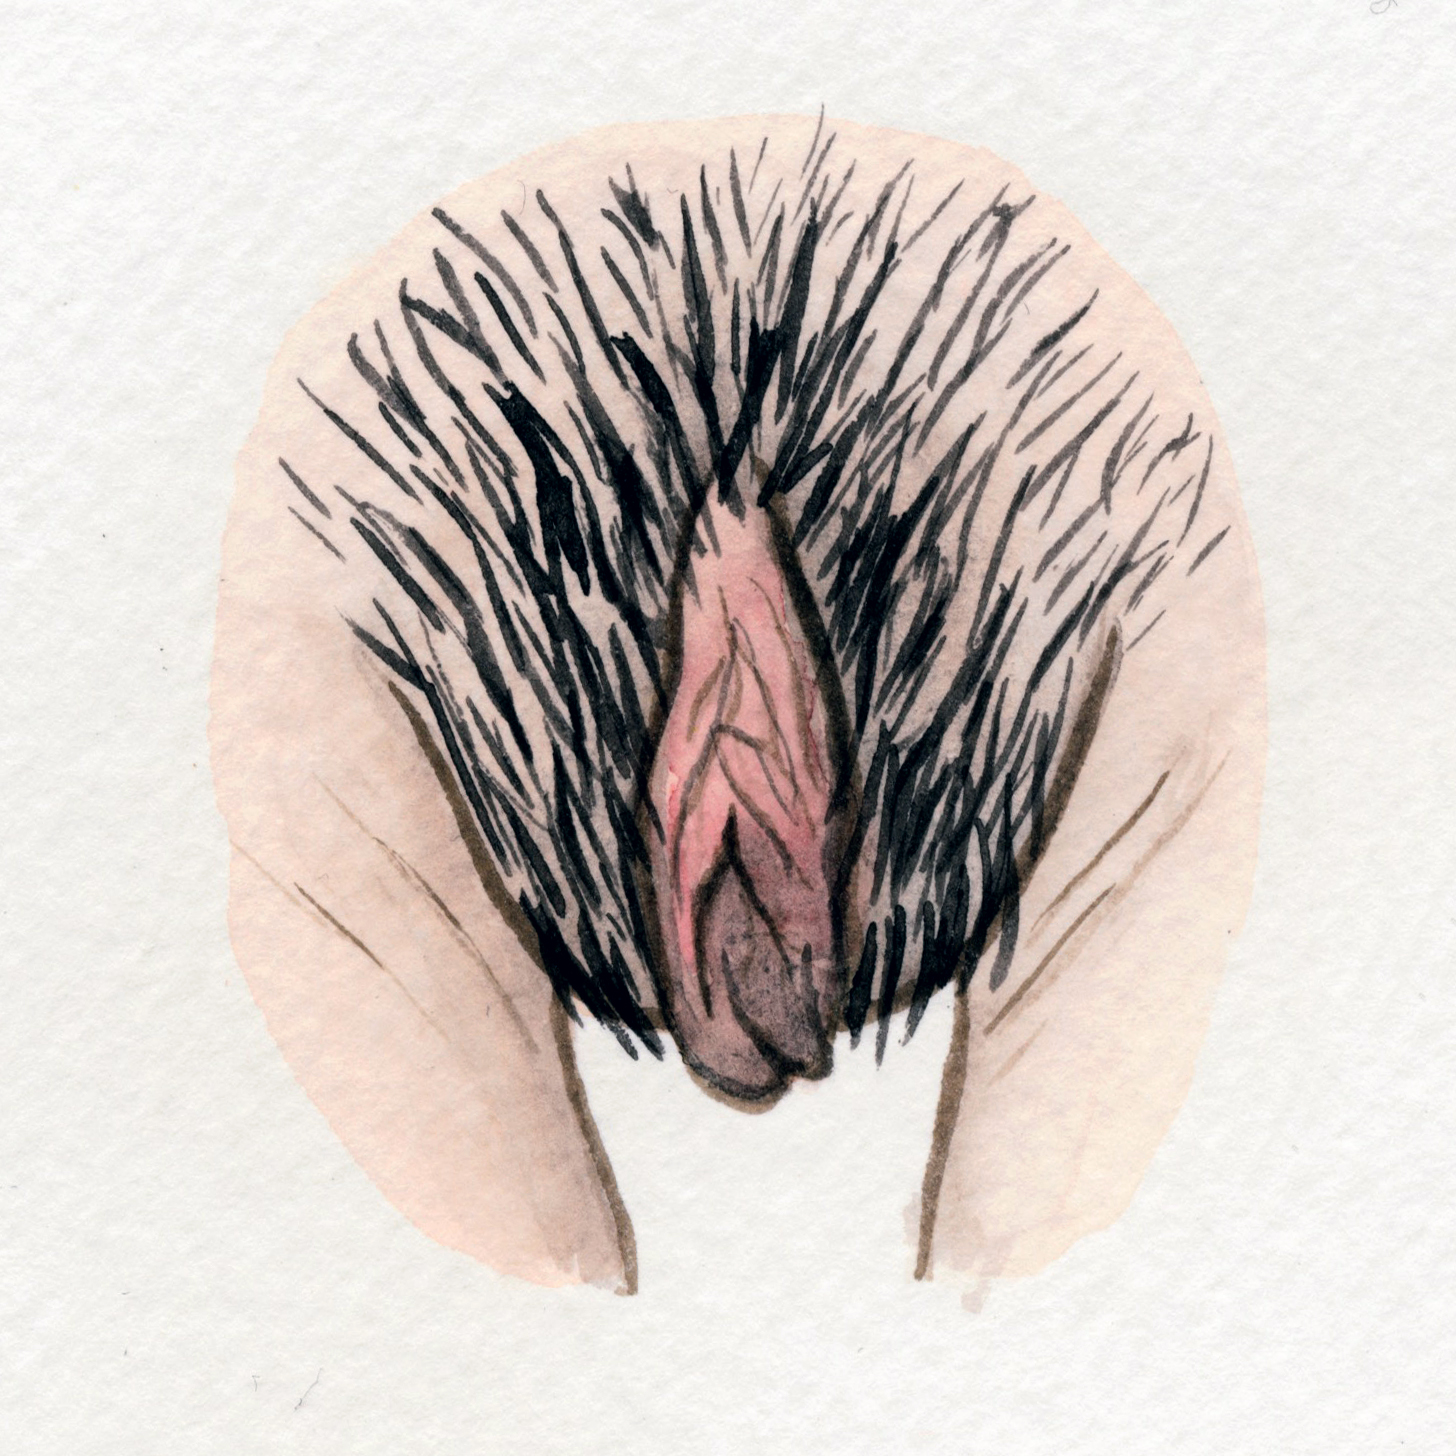 The Vulva Gallery - Vulva Portrait #138.jpg